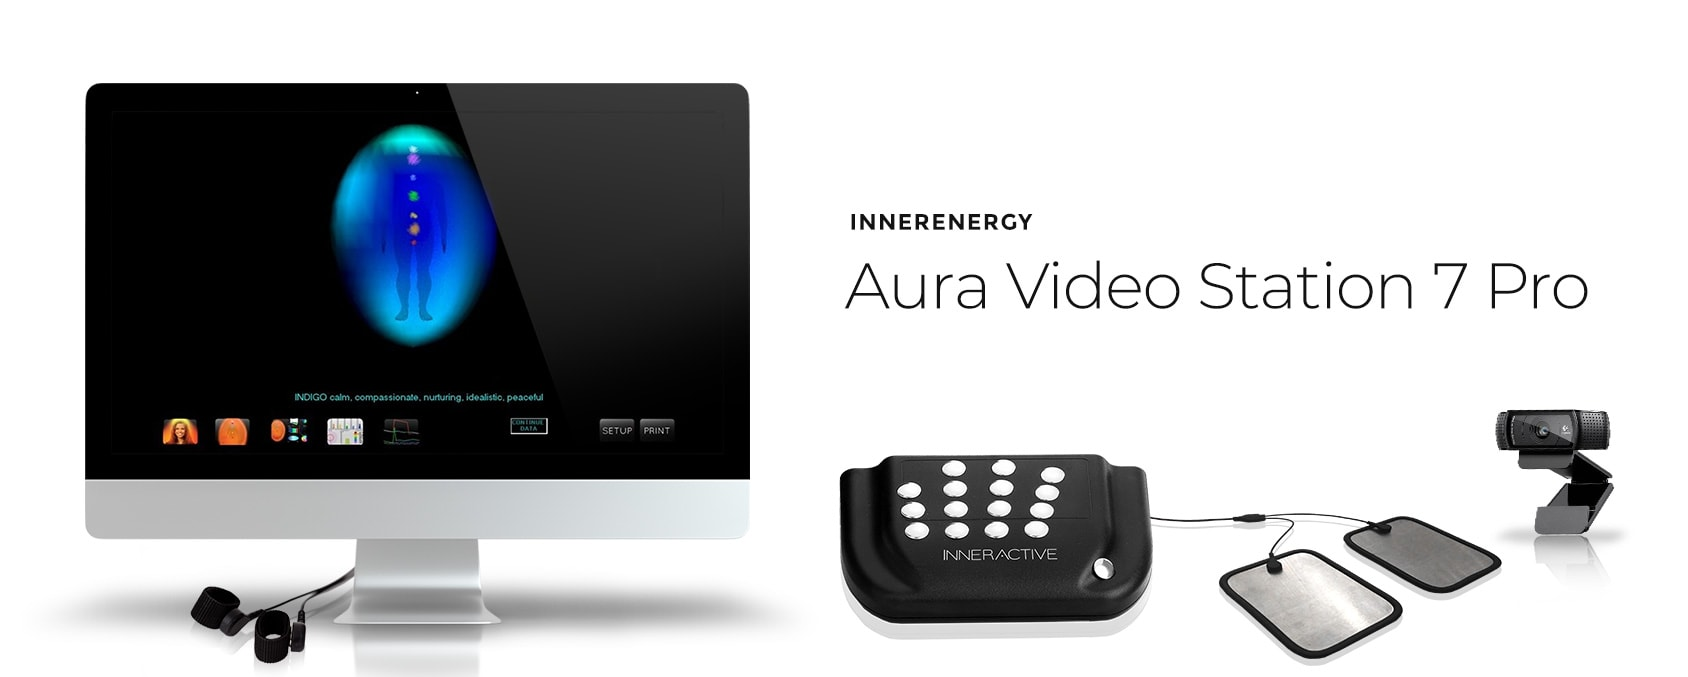 Aura Video Station 7 Pro